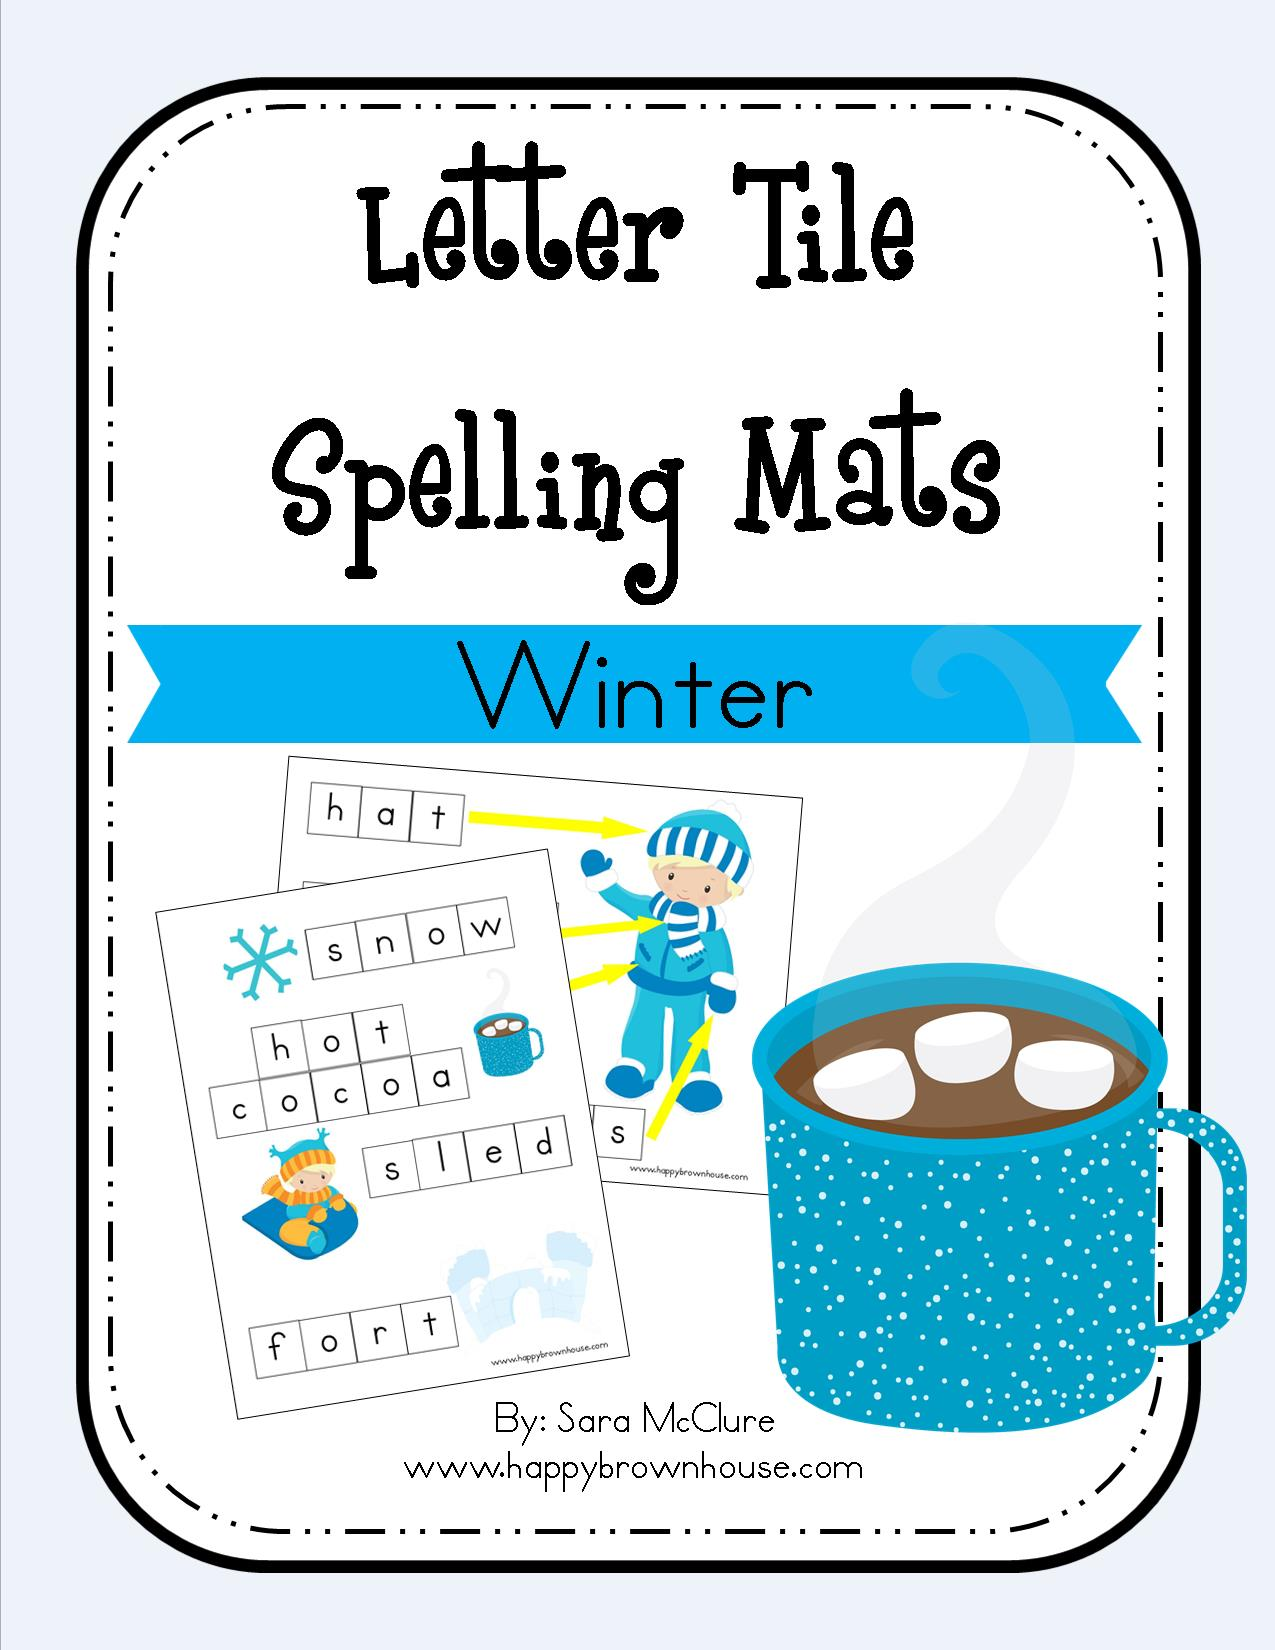 Winter Letter Tile Spelling Mat